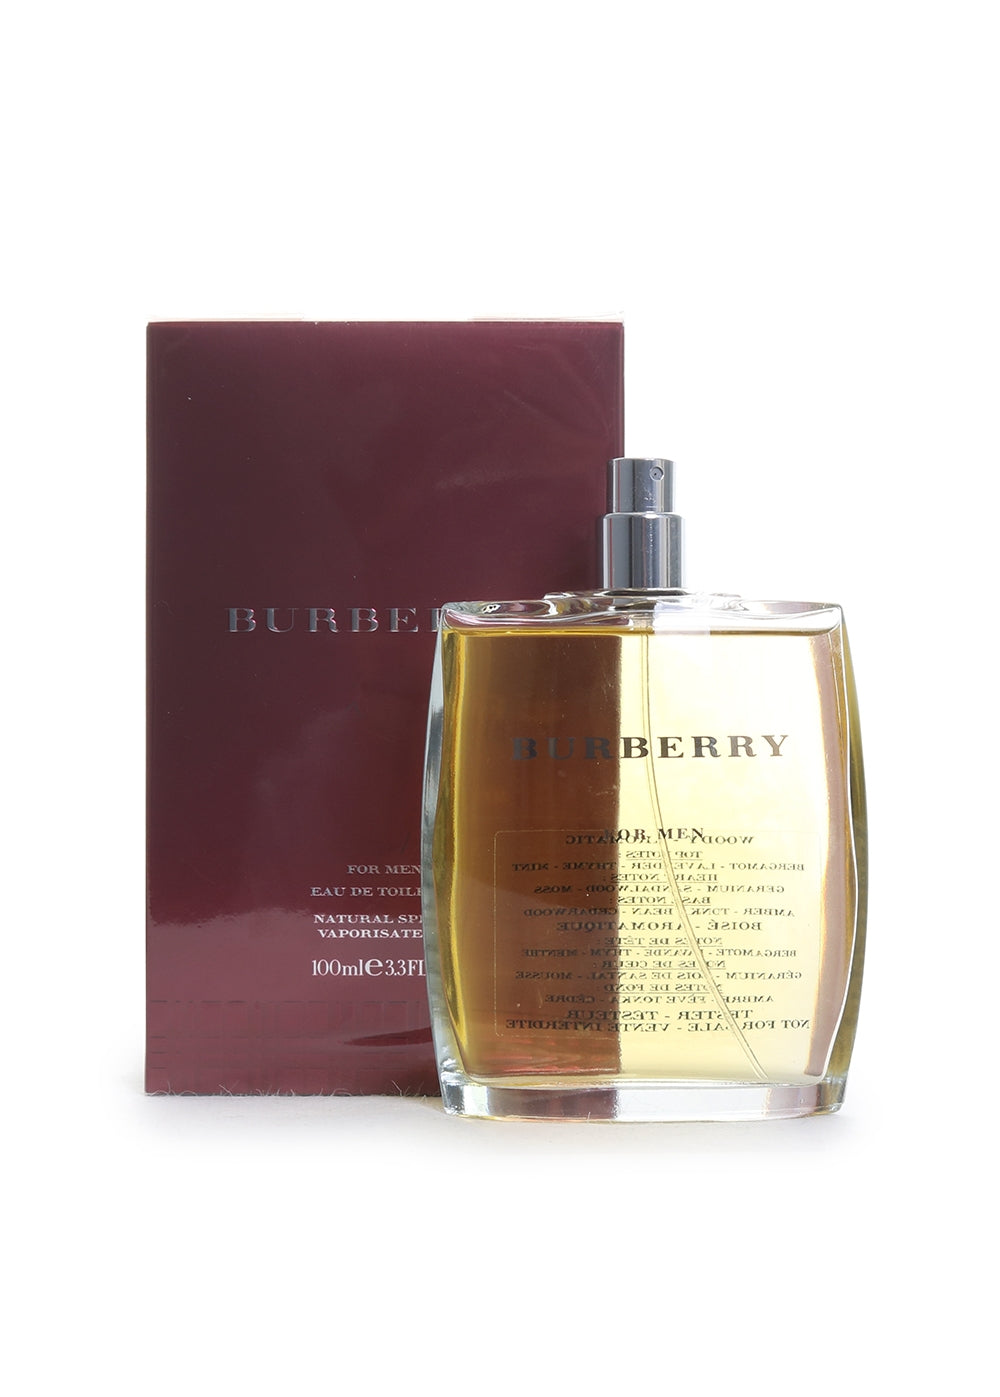 Burberry Classic Men's Eau De Toilette Cologne